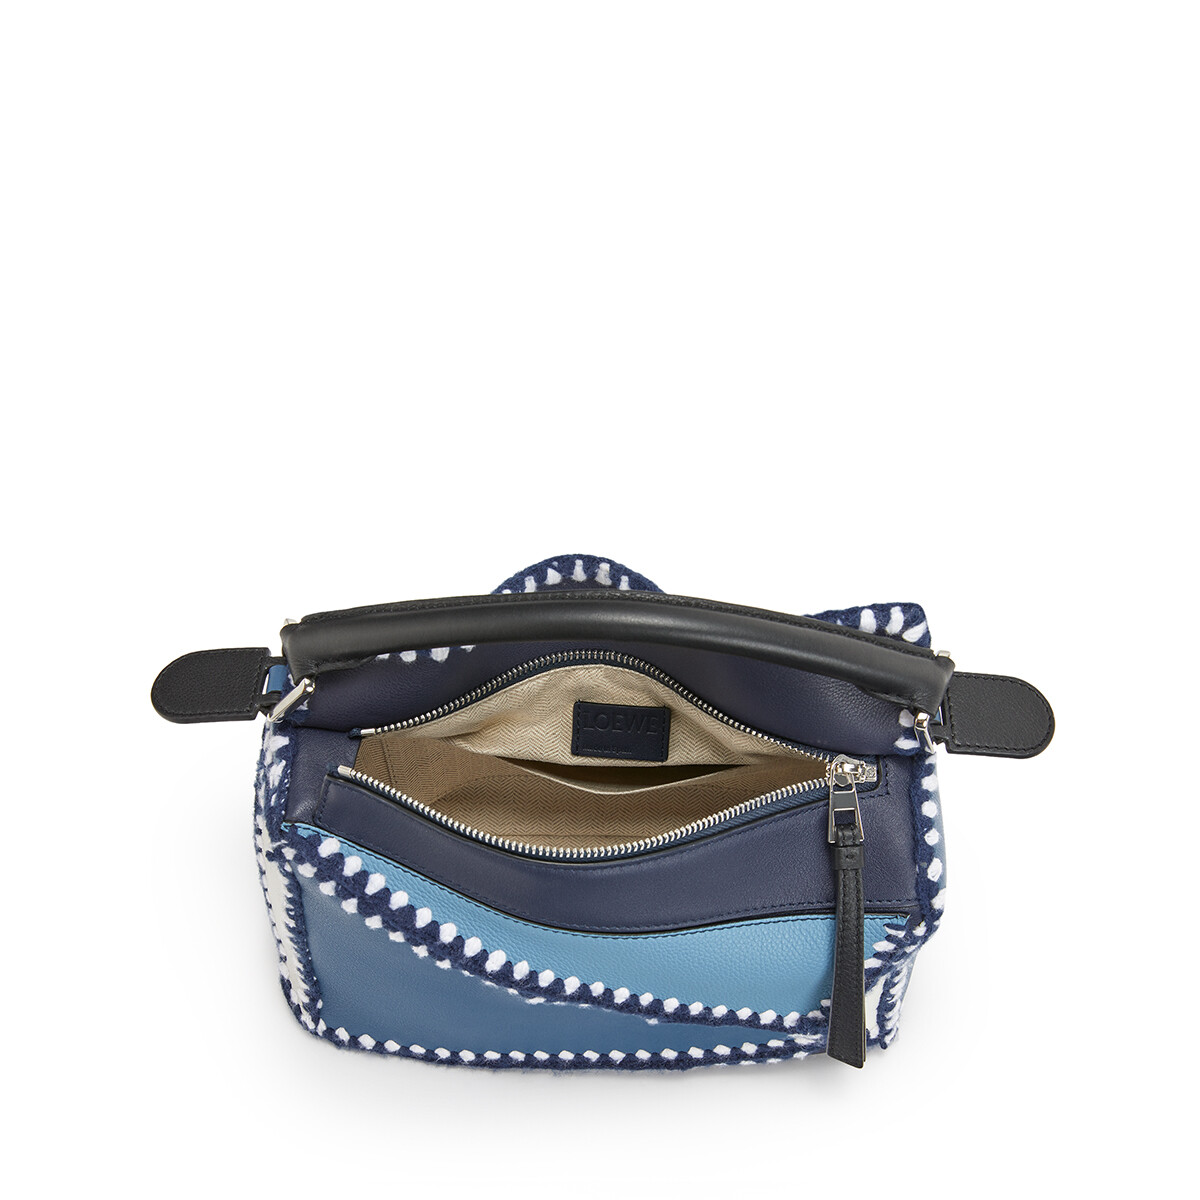 LOEWE Puzzle Crochet Small Bag Midnight Blue/Varsity Blue front